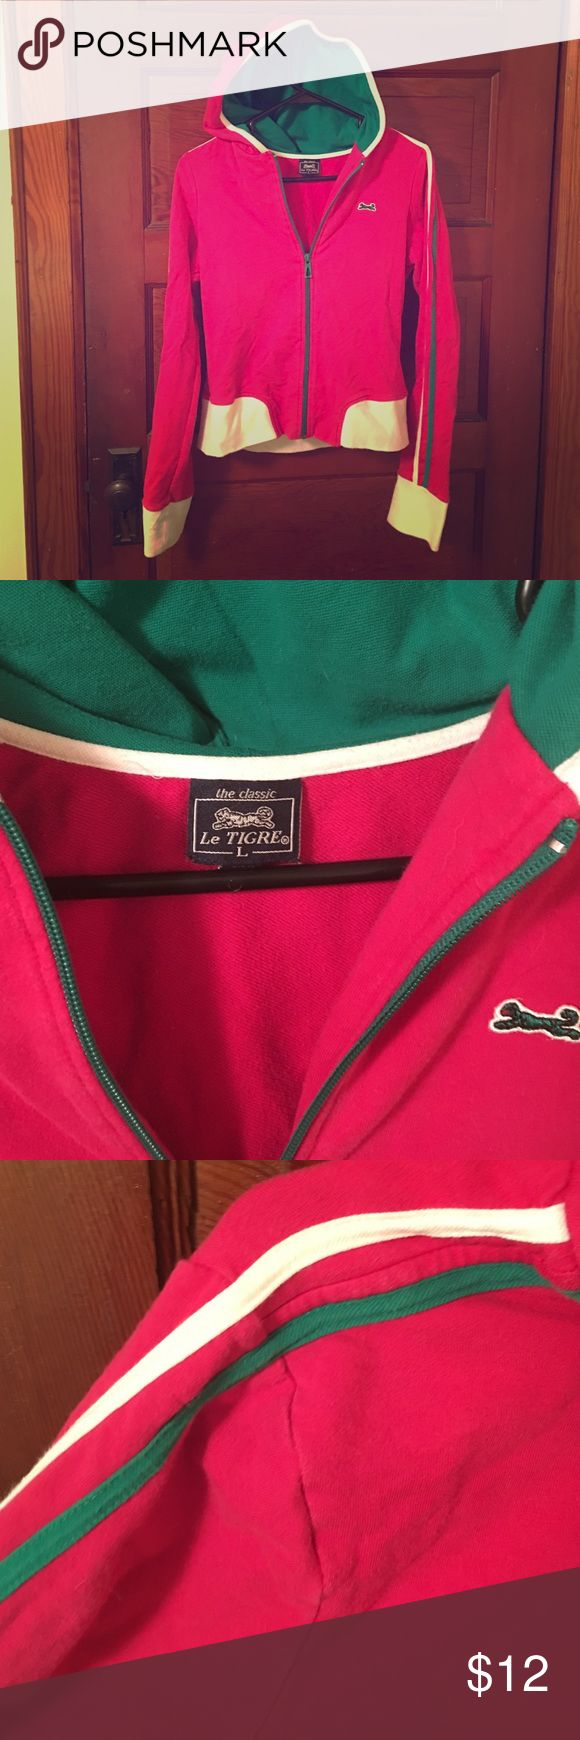 Le Tigre pink and green zip up 95% cotton 5% spandex. Le Tigre Jackets & Coats